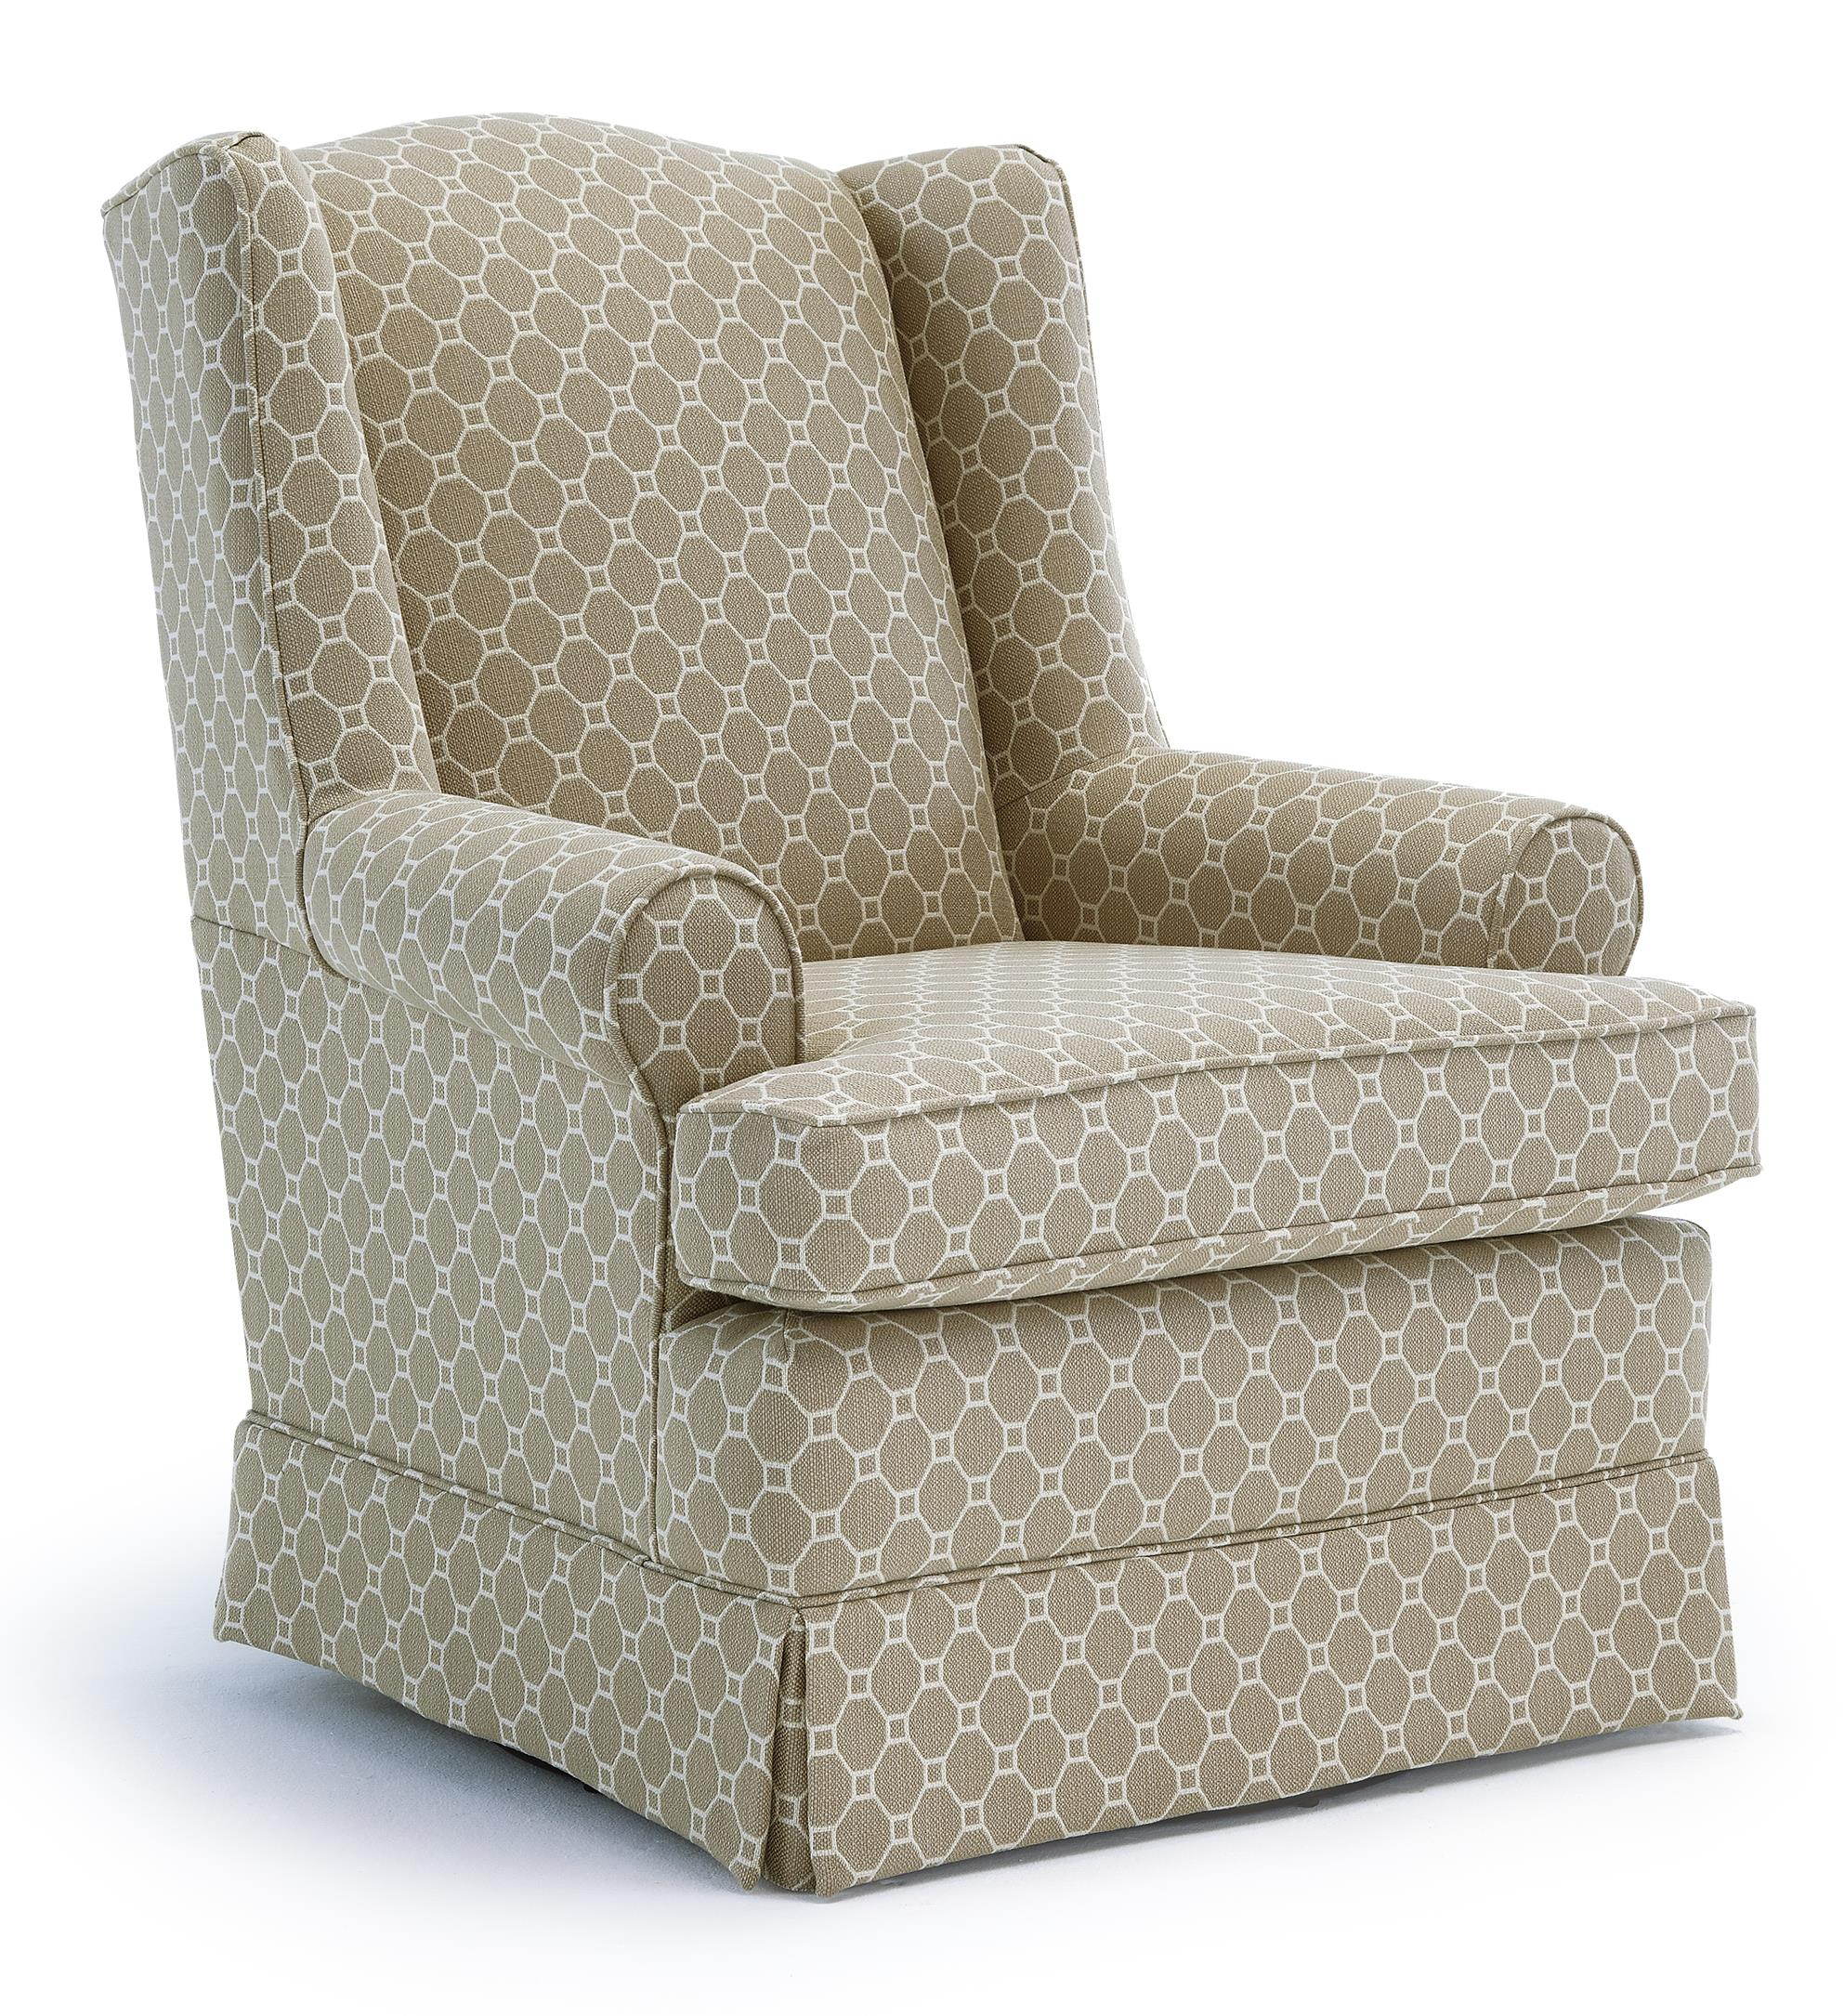 Best Home Furnishings Chairs - Swivel Glide Roni Swivel Glider Chair - Item Number: 7197-27069